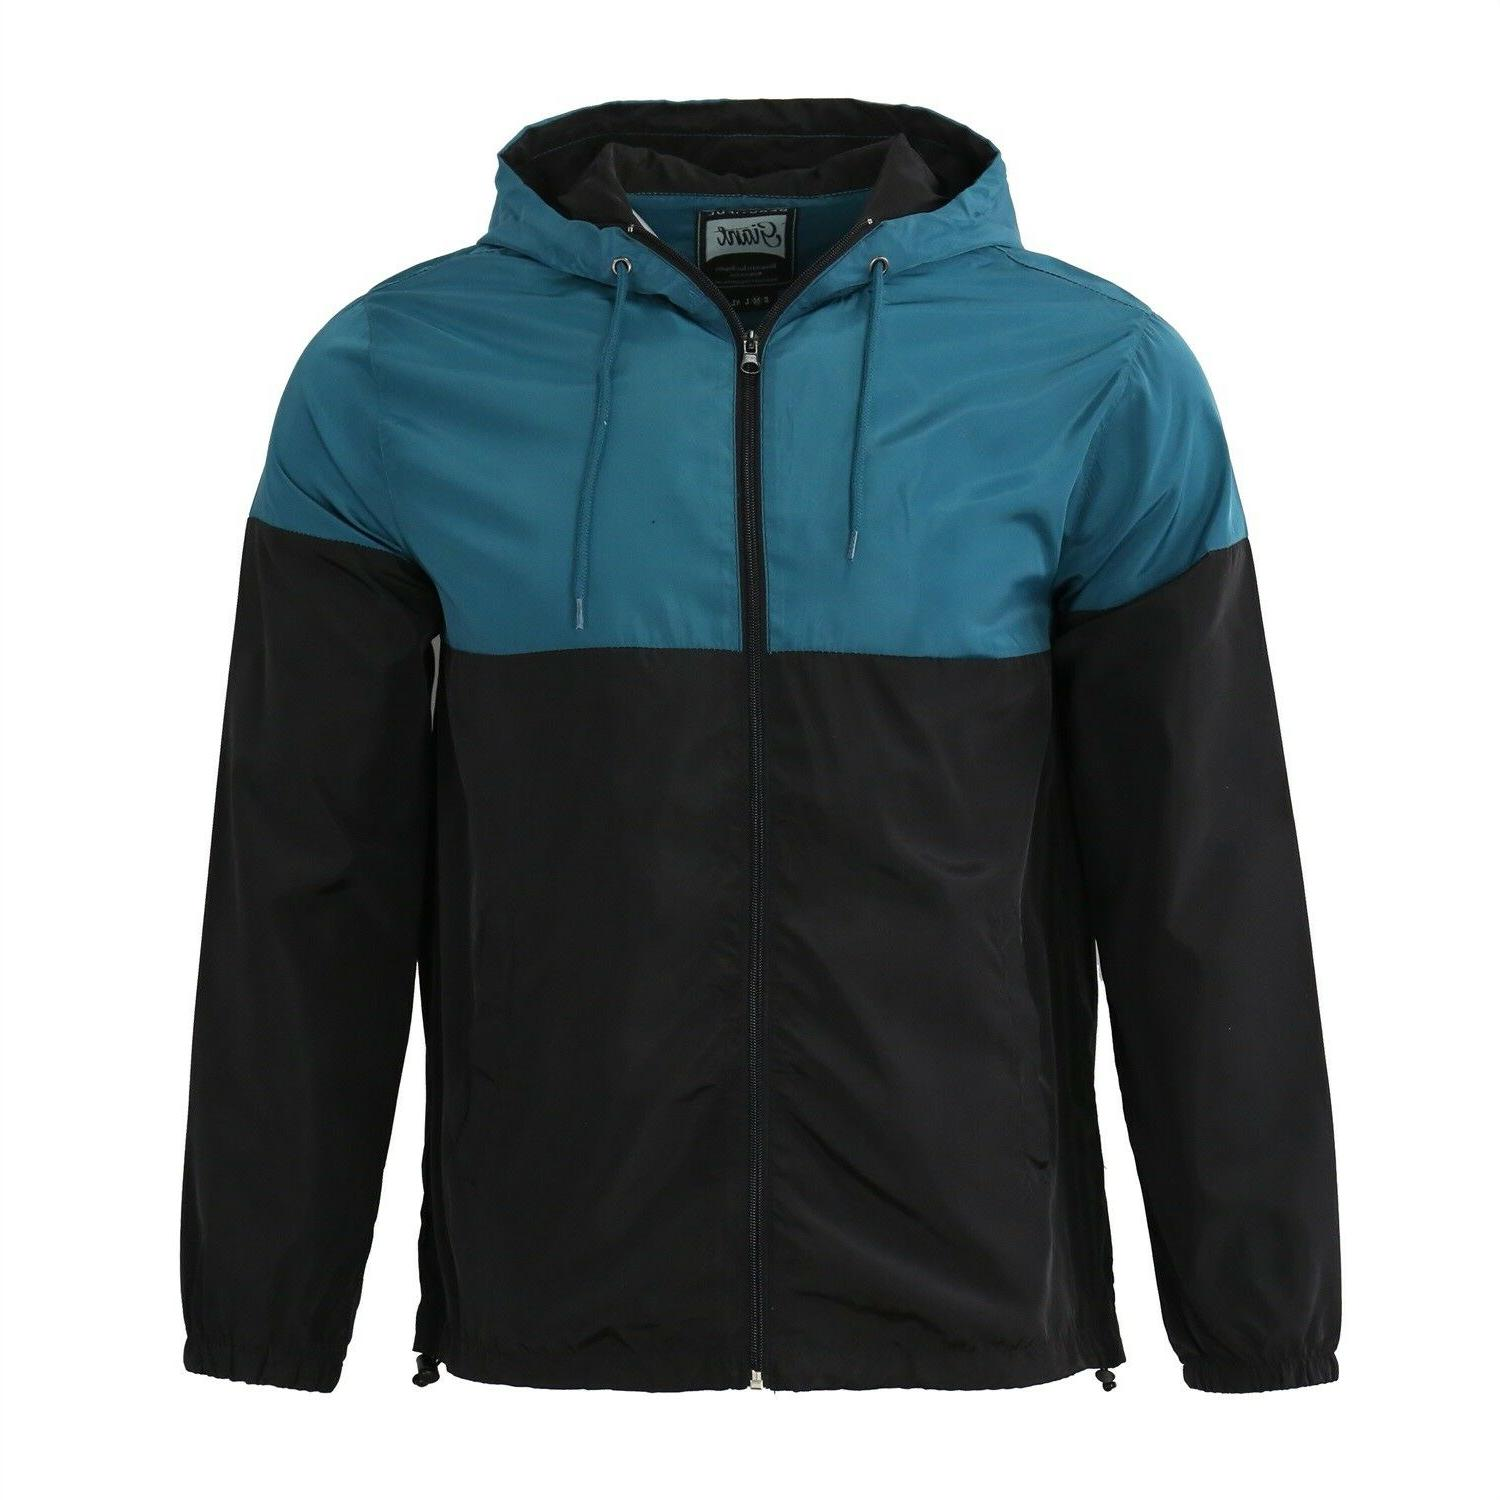 Men's Windproof Outdoor Rain Jacket Teal